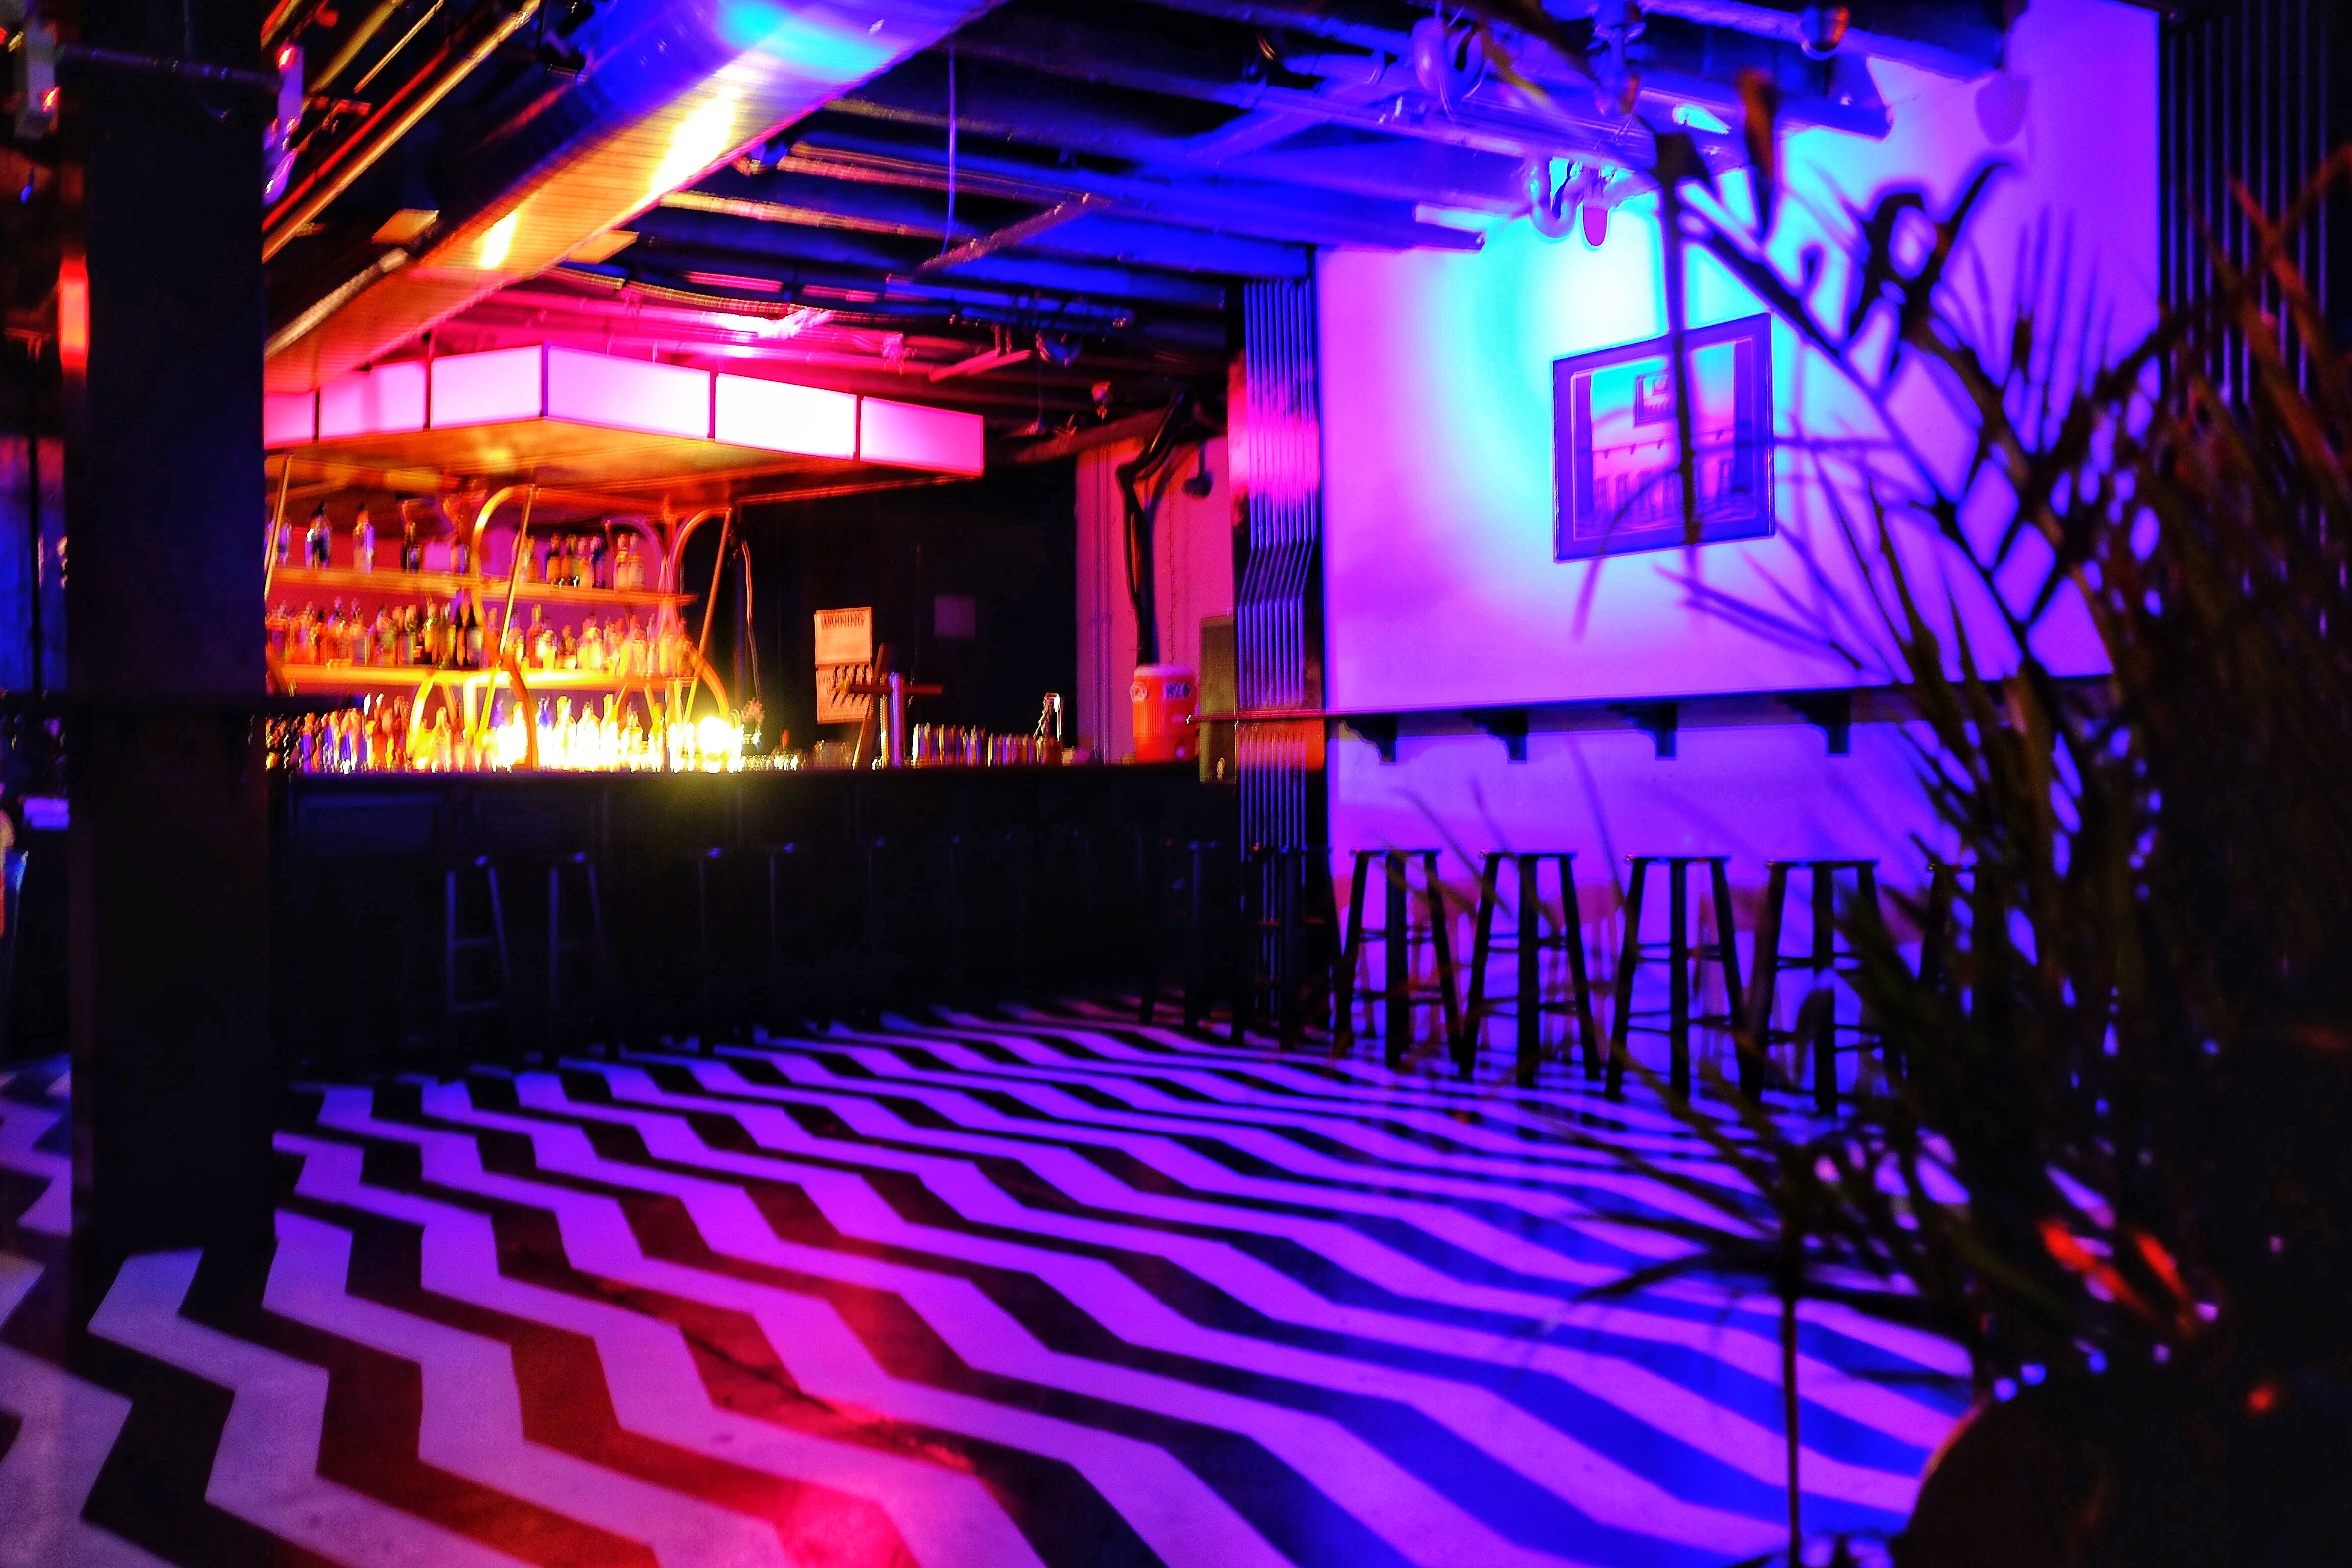 The Best NYC Bars Where You Can Dance - New York - The